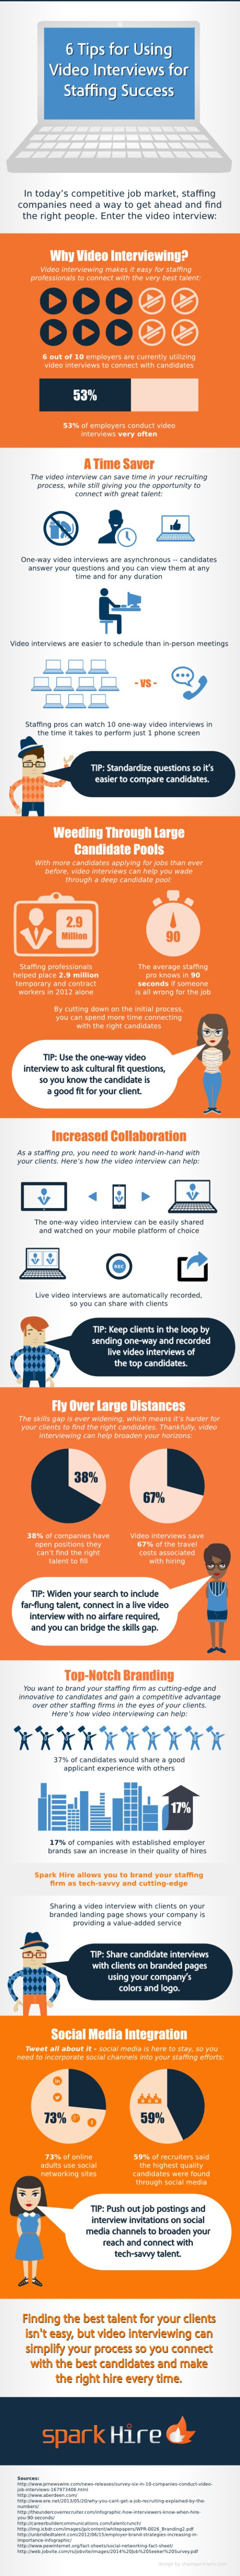 6-Tips-for-Using-Video-Interviews-for-Staffing-Success-Infographic